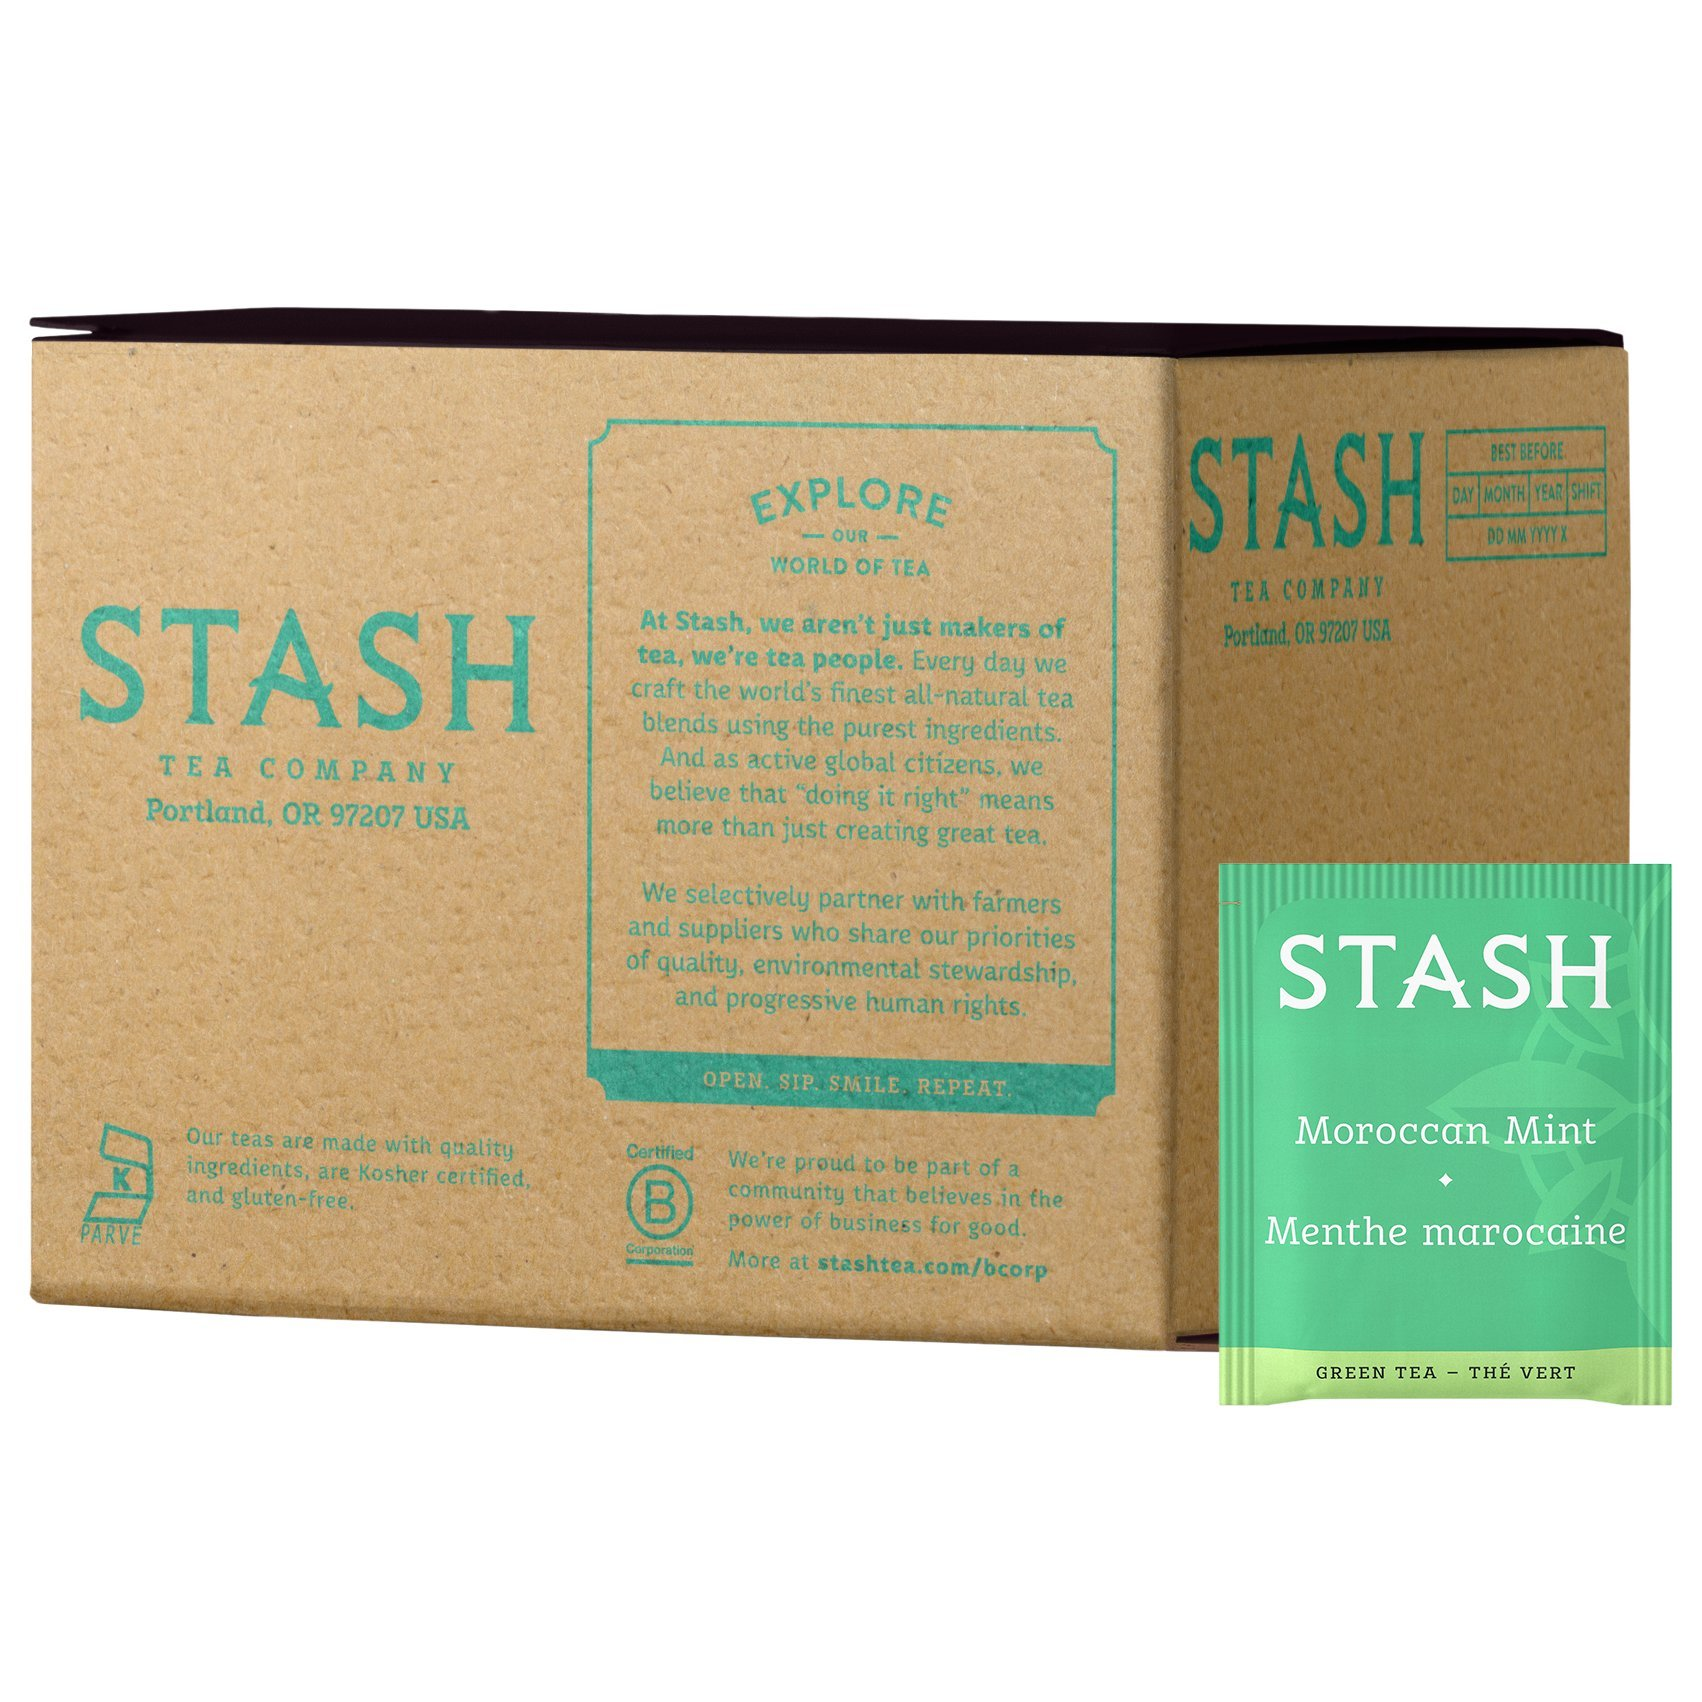 Stash Tea Moroccan Mint Green Tea, 100 Count Box of Tea Bags Individually Wrapped in Foil (packaging may vary), Medium Caffeine Tea, Green Tea Blended with Mint, Drink Hot or Iced by Stash Tea